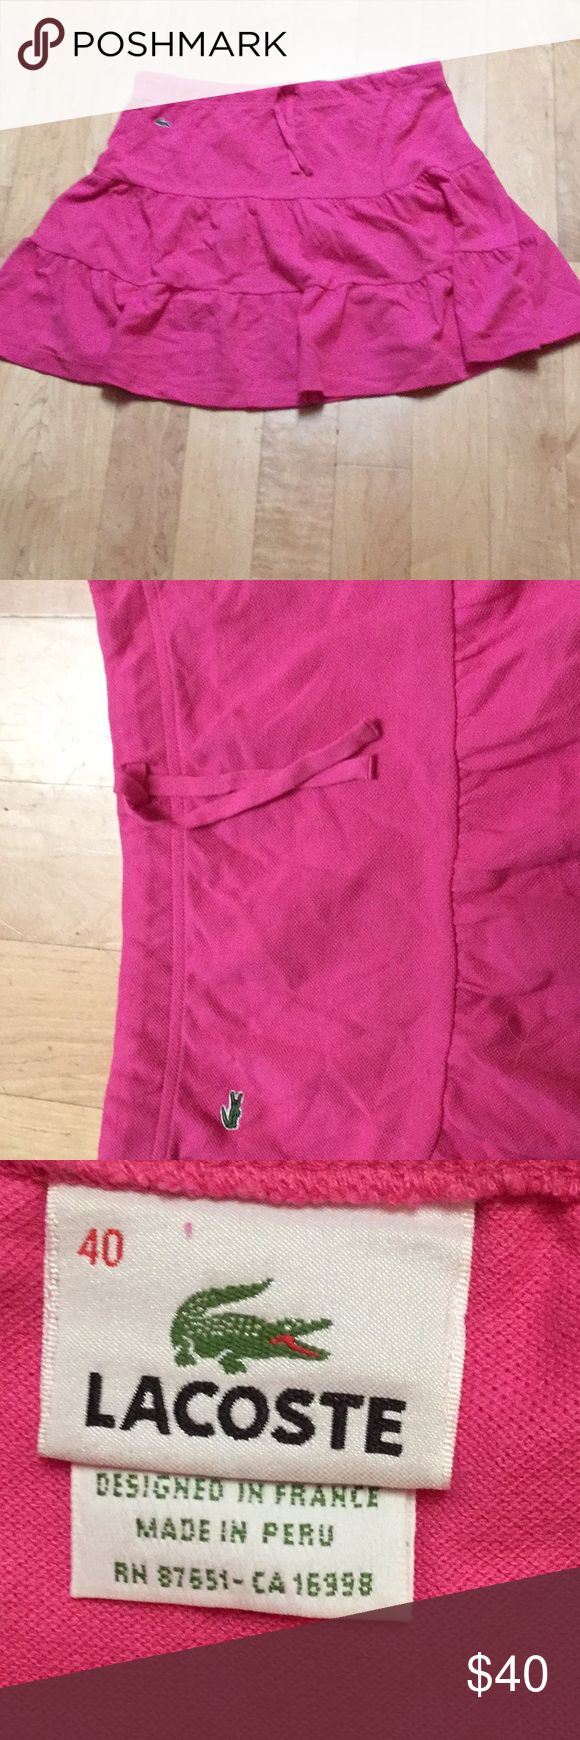 """VERY CUTE Lacoste pink skirt PERFECT CONDITION High end Lacoste brand tiered pink skirt. Has an easy fitting drawstring waist.  Made of 100% cotton (pique texture).  Purchased at Neiman Marcus. Approx 18.5"""" long Lacoste Skirts Mini"""